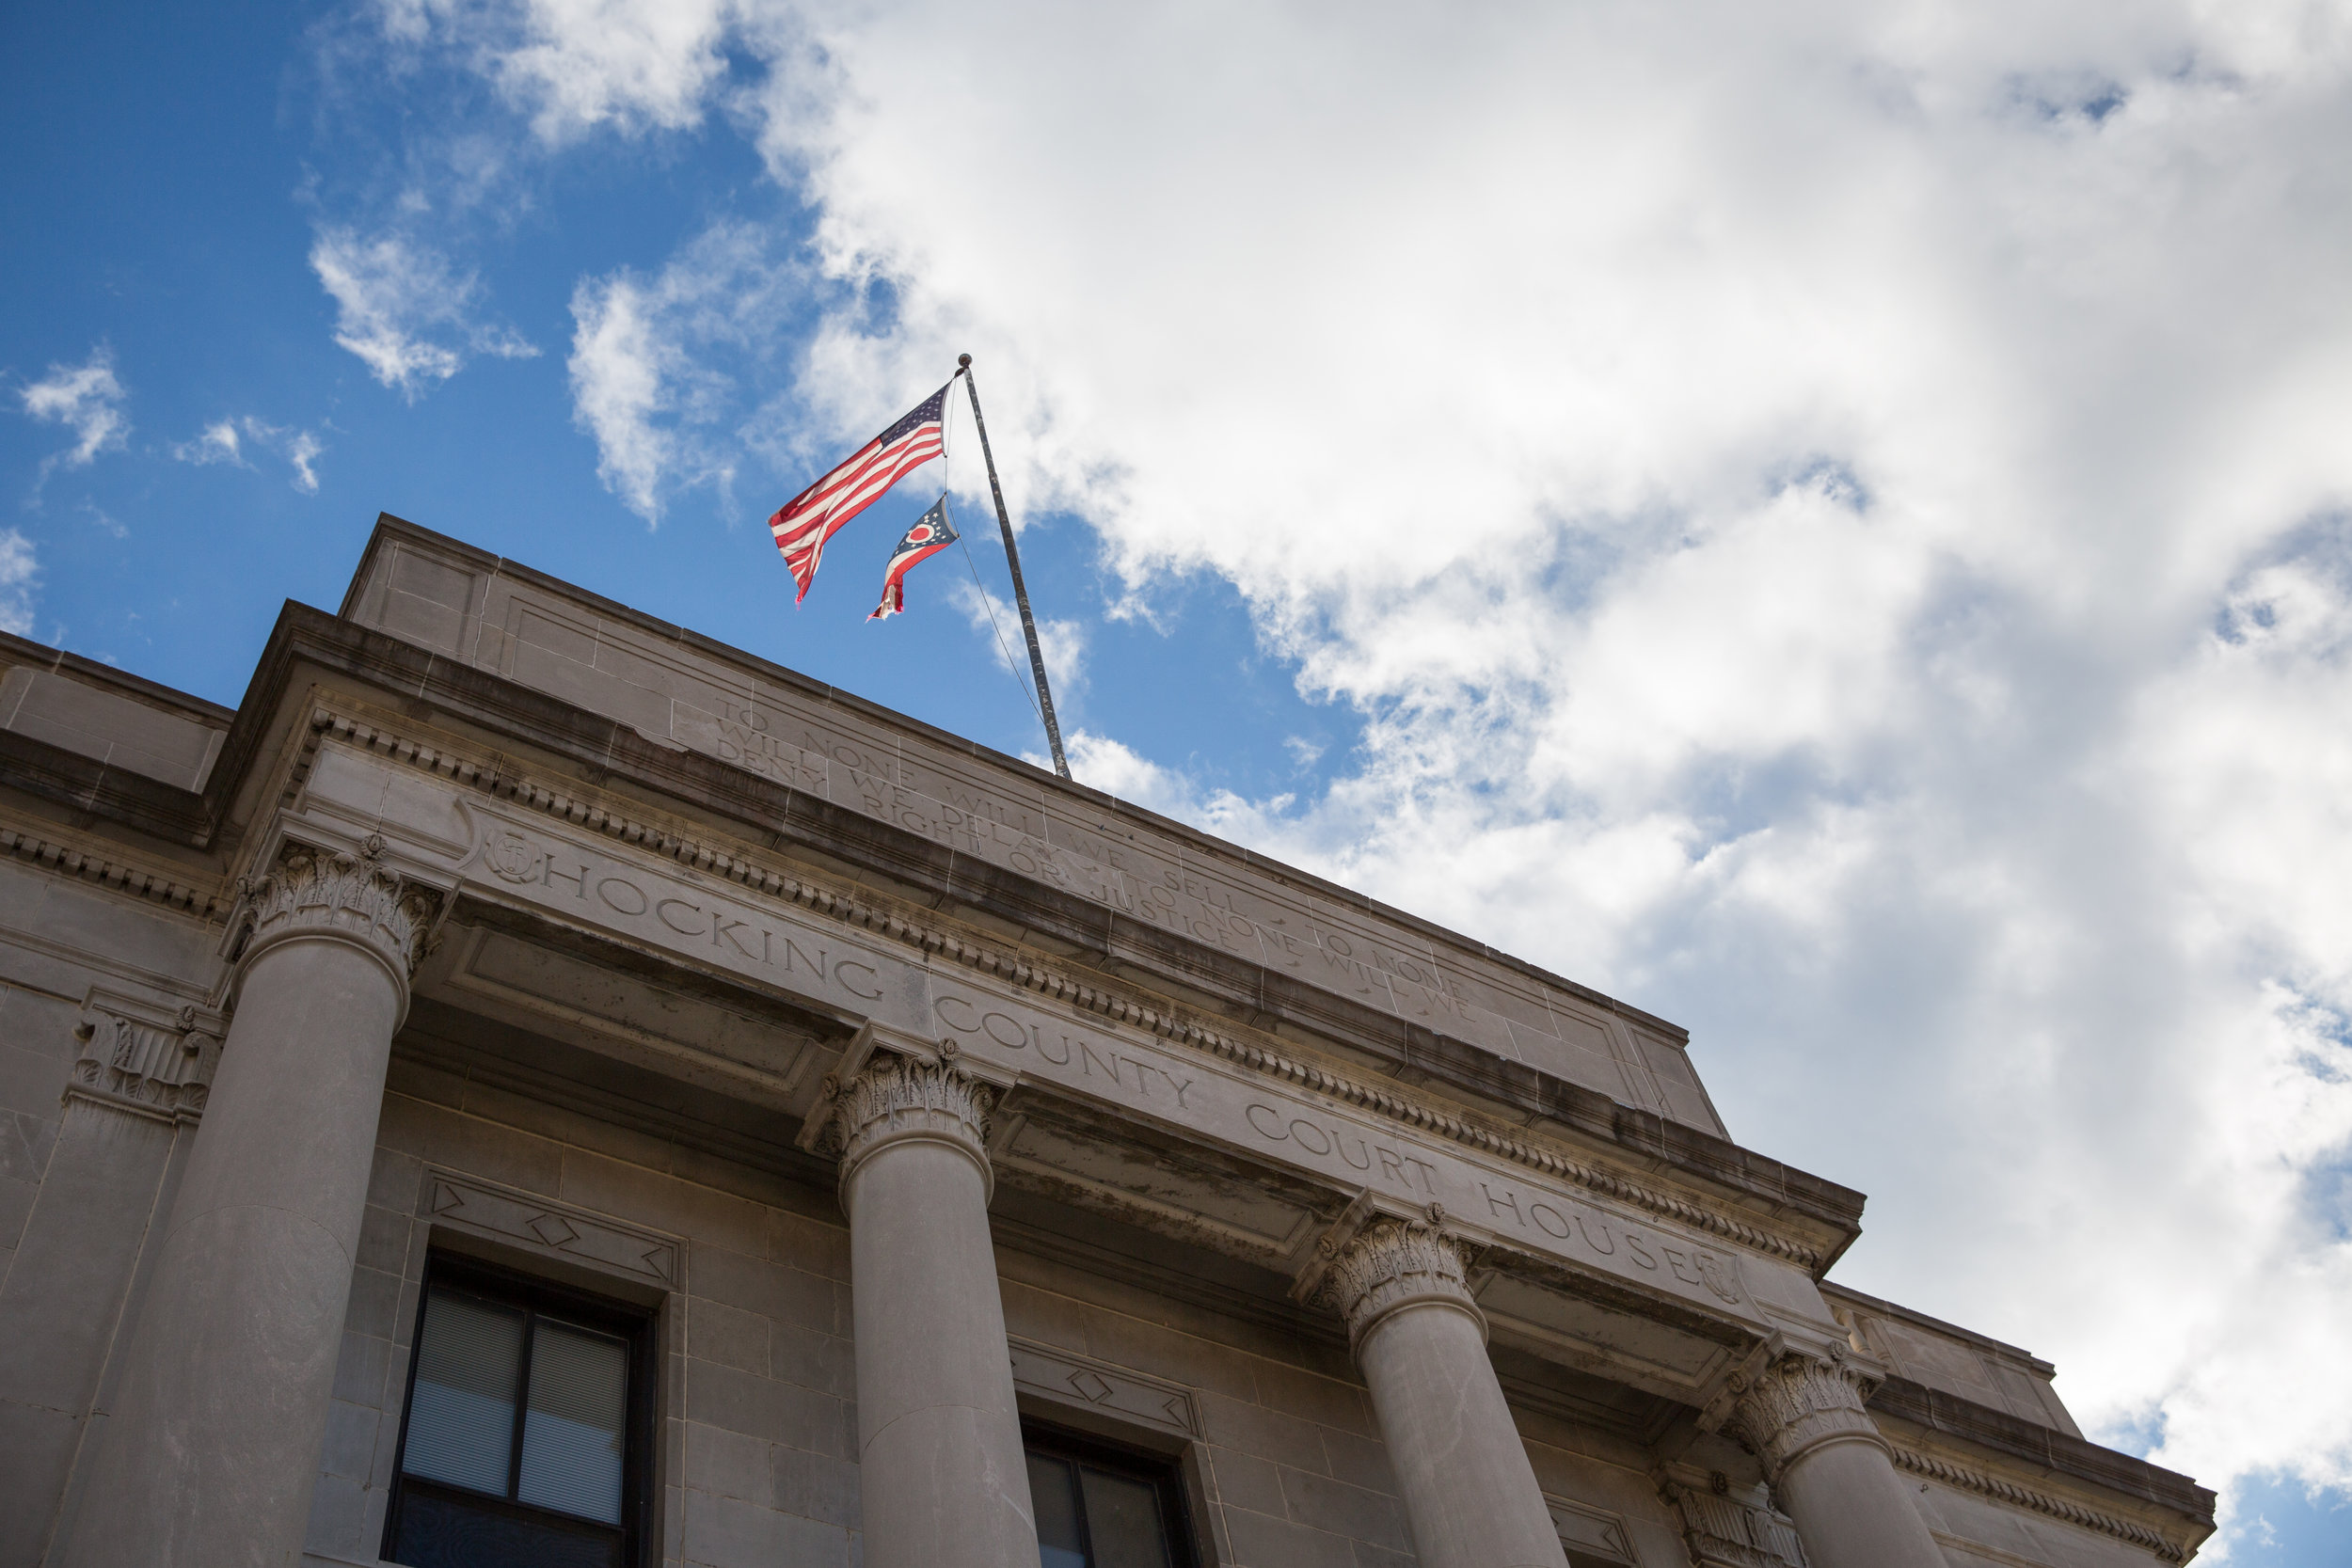 The Hocking County Municipal Courthouse is home to one of the first Vivitrol courts in the state. Many other counties have used it as a model because of the positive results that have come out of the program.